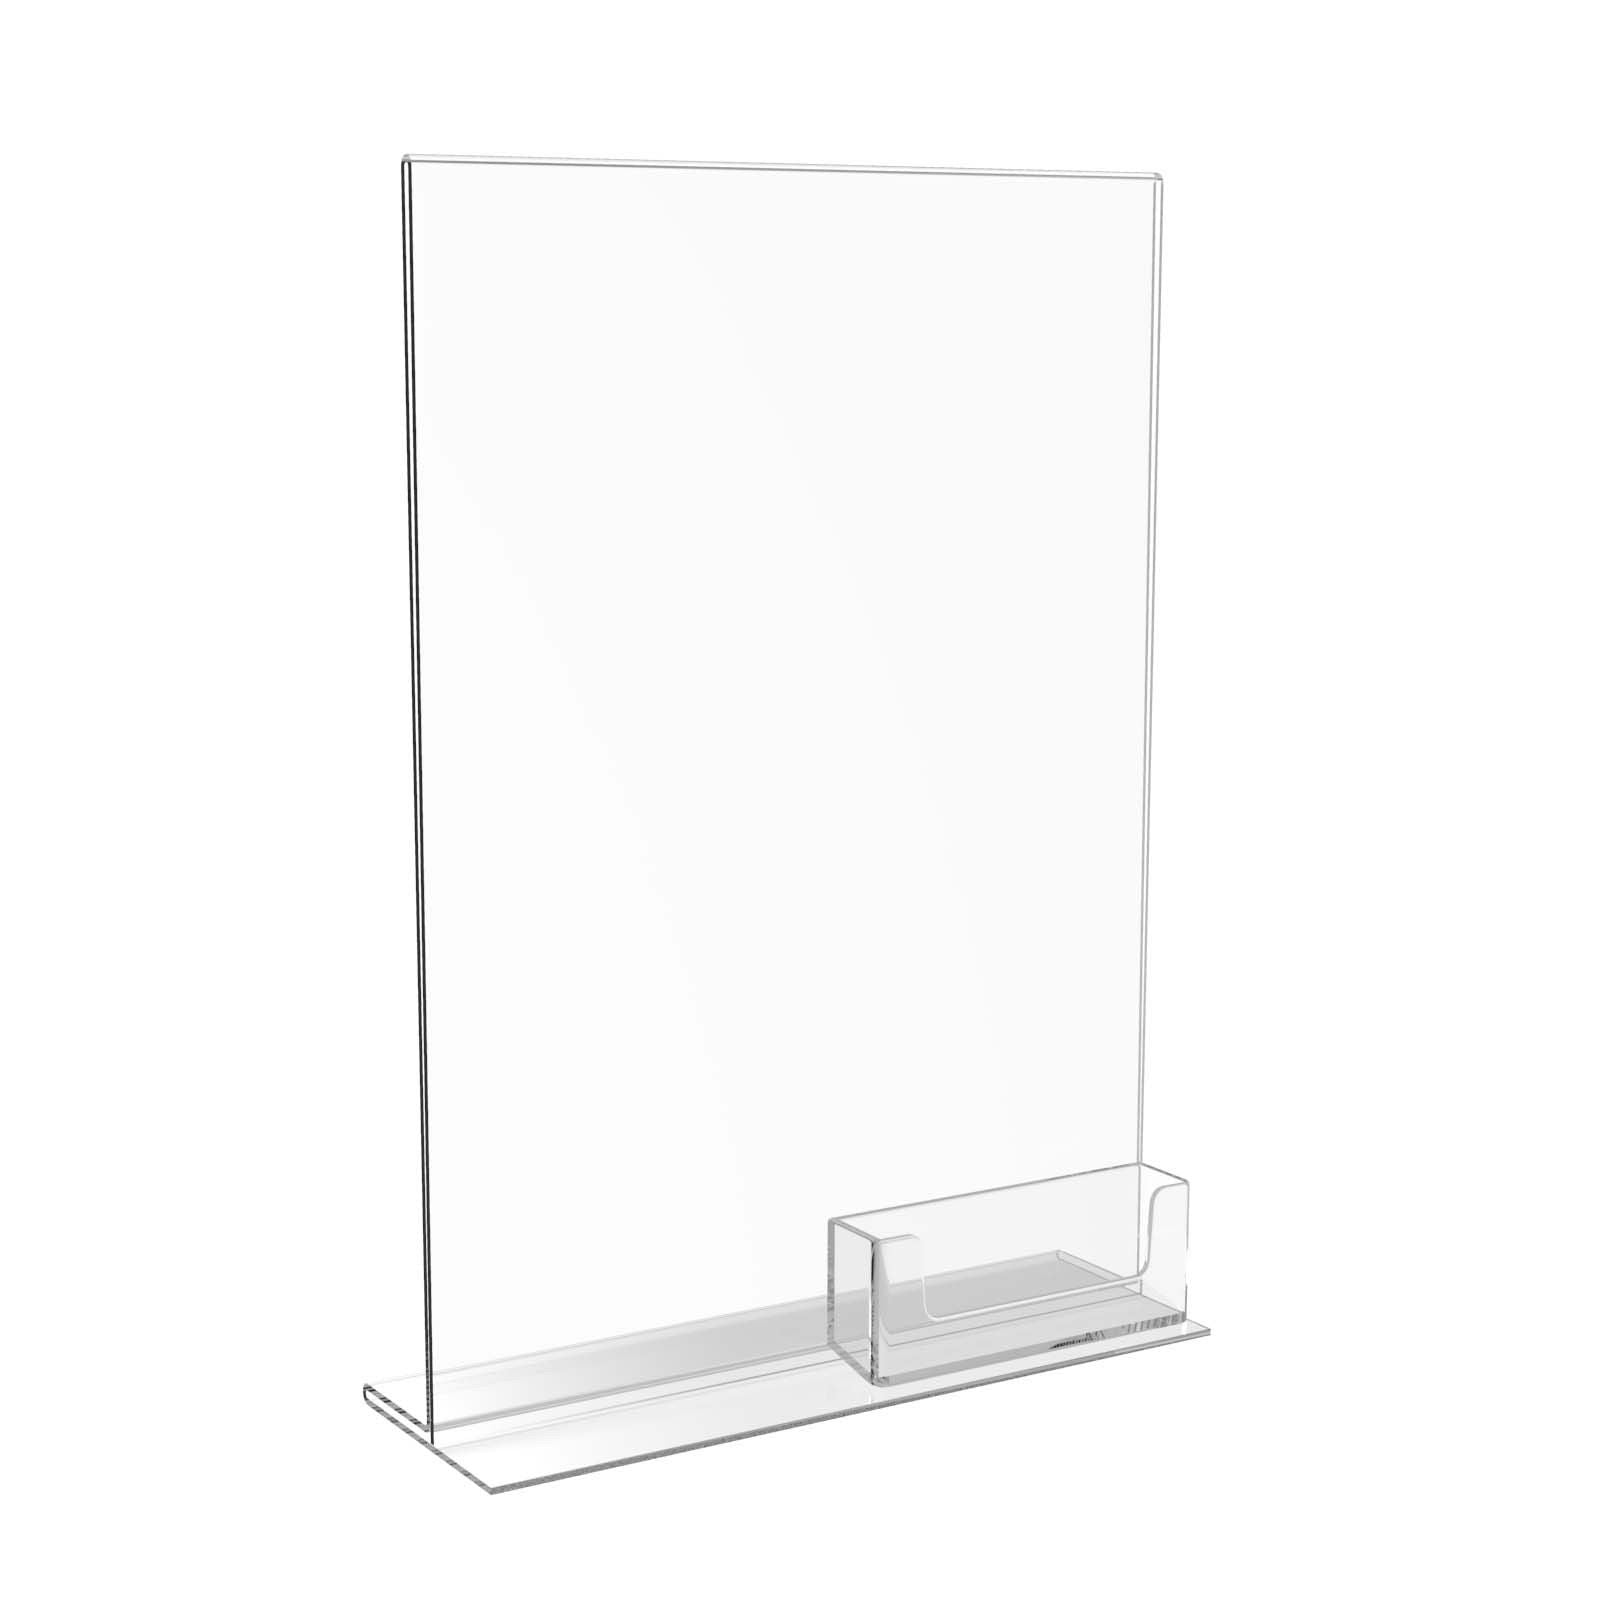 Poster holder A4 Menu Poster Holders Acrylic Perspex Display Stands ...